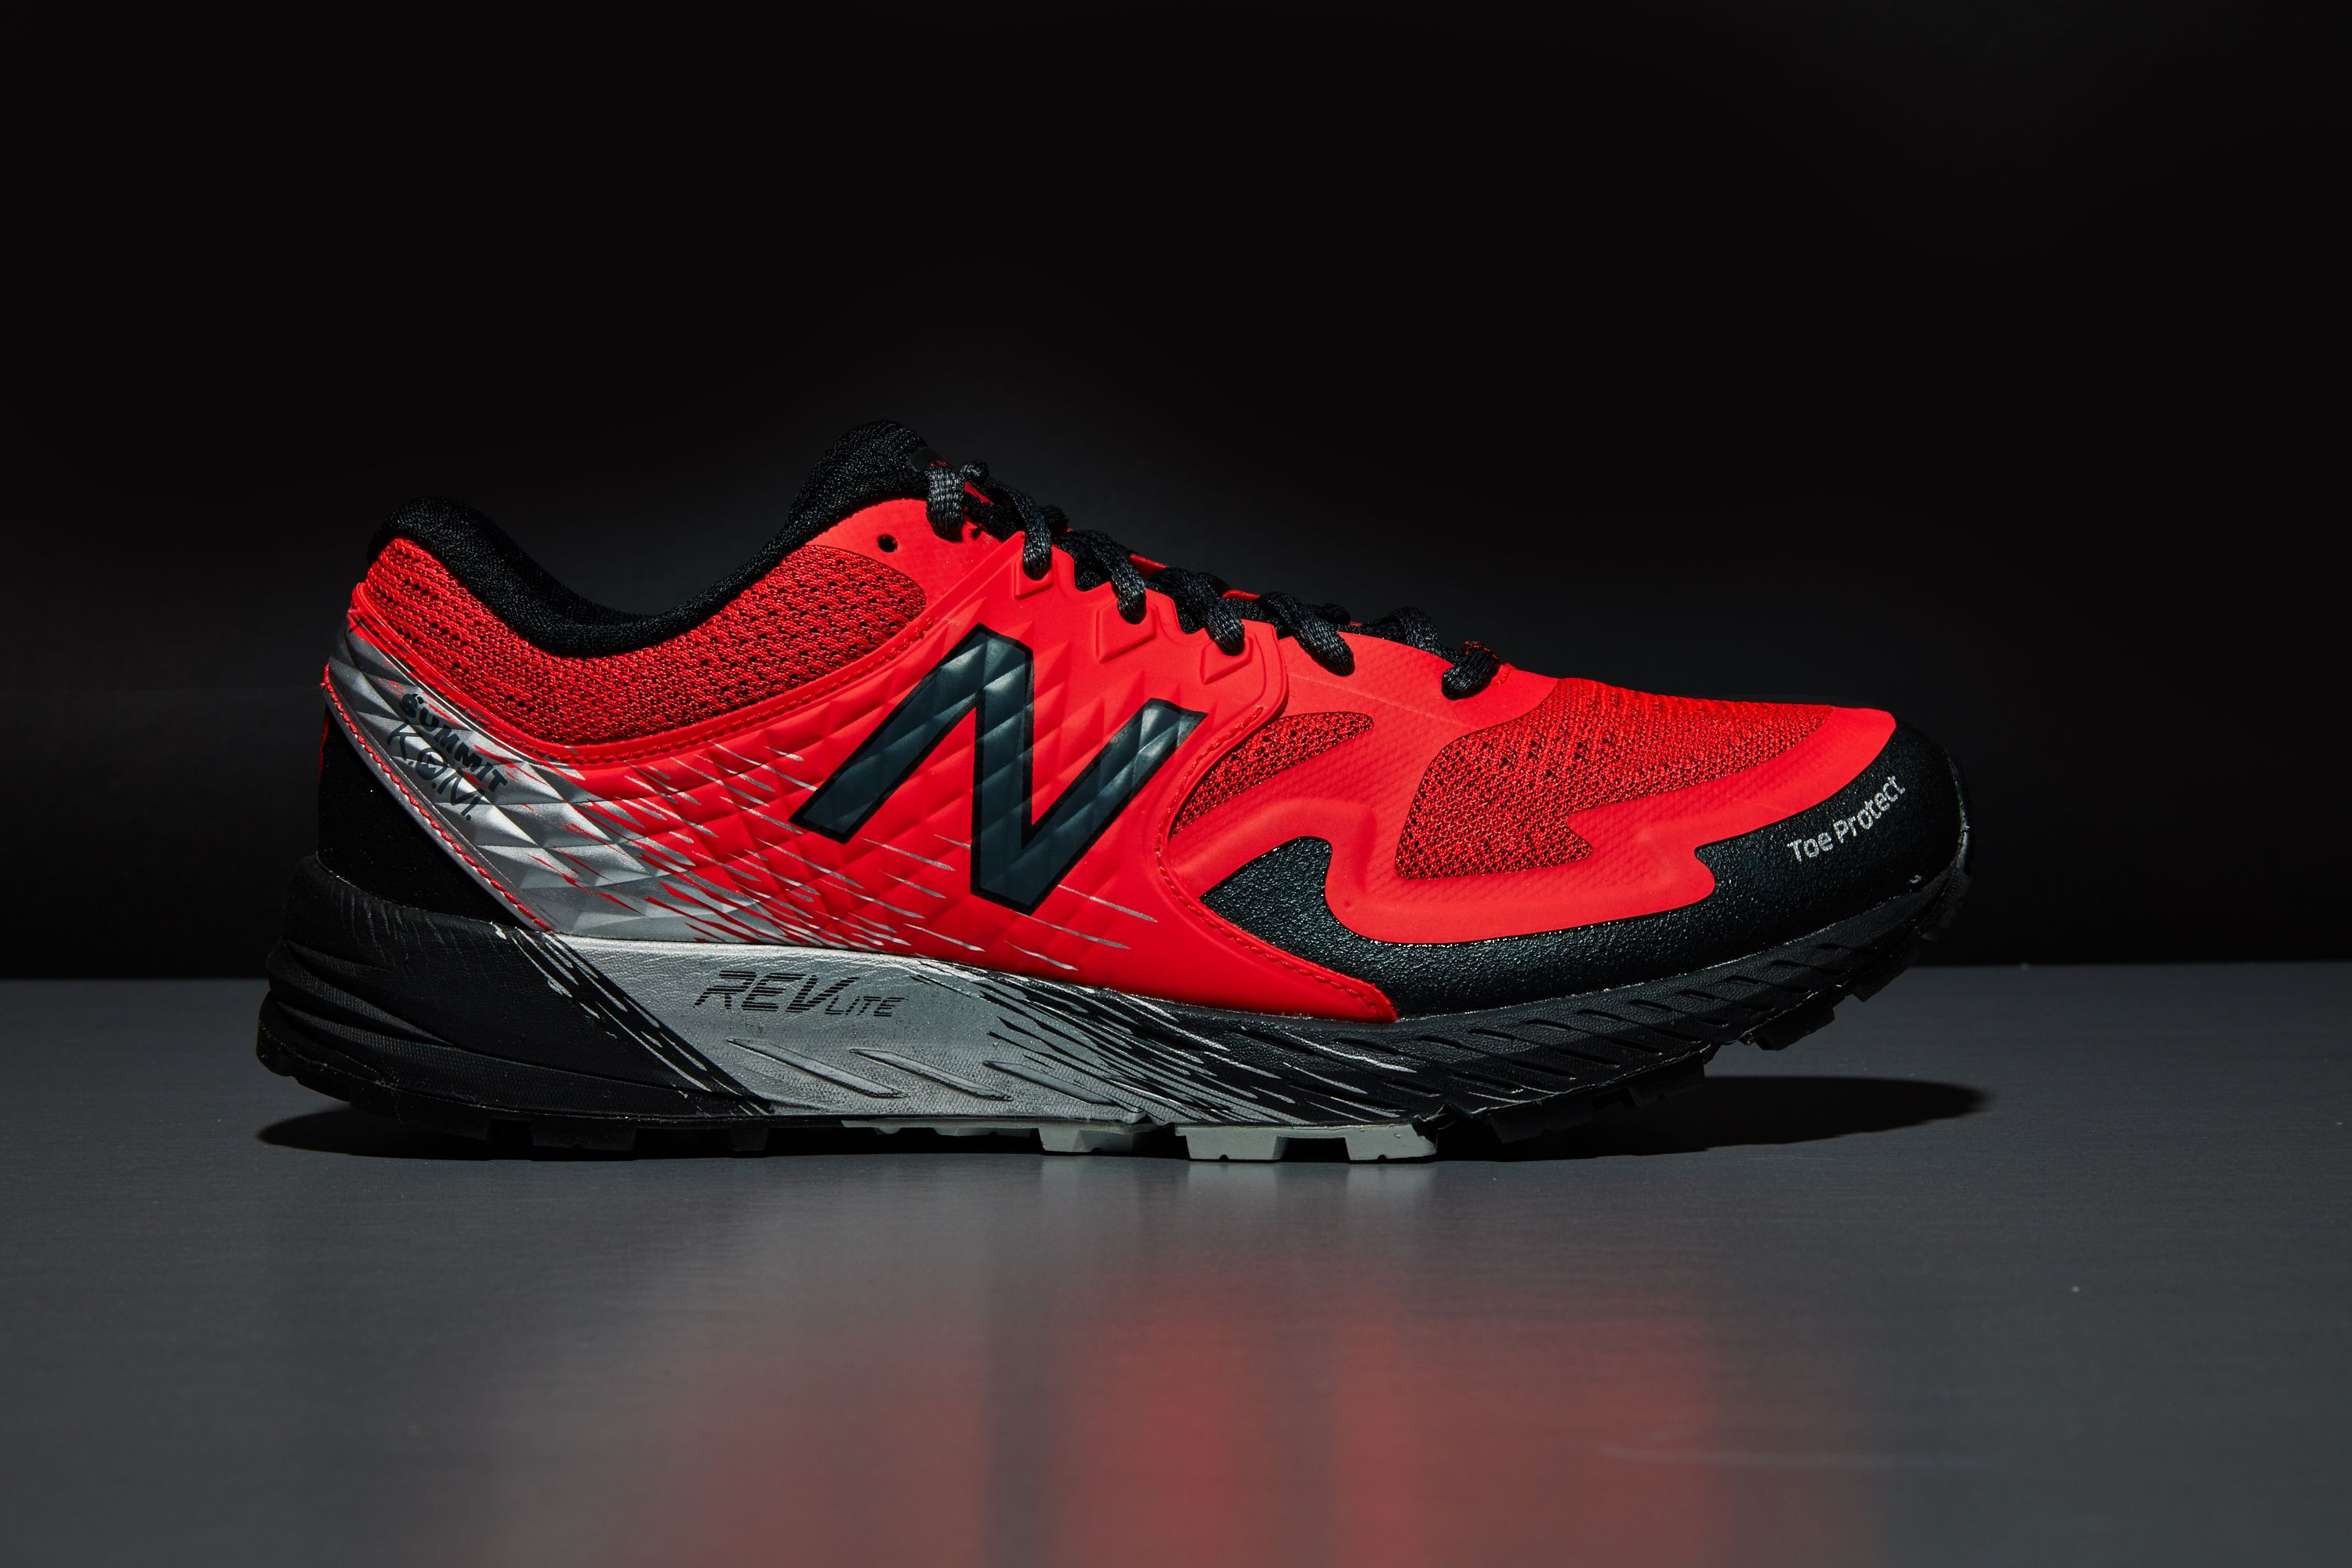 8f694b529e1ba Best New Balance Running Shoes | New Balance Shoe Reviews 2019